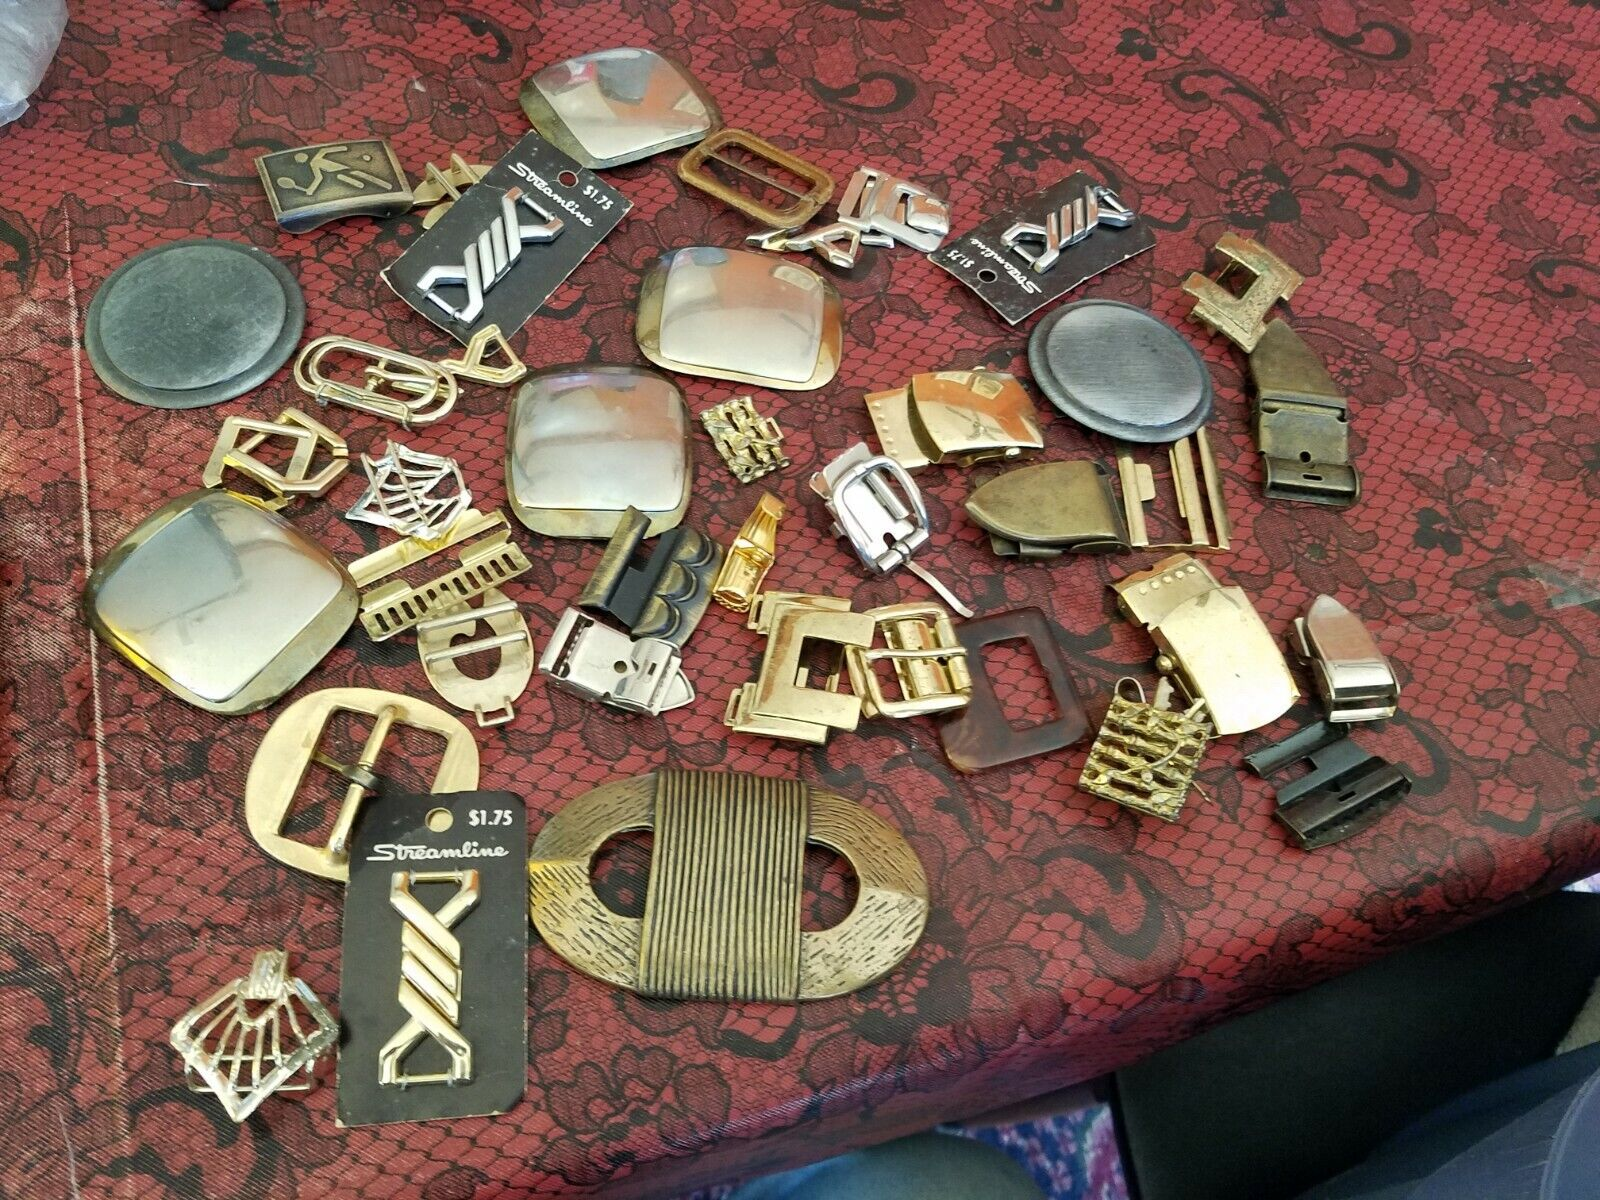 30 + Assorted Mostly Metal Women's Belt & Clothing Buckles & Accessories